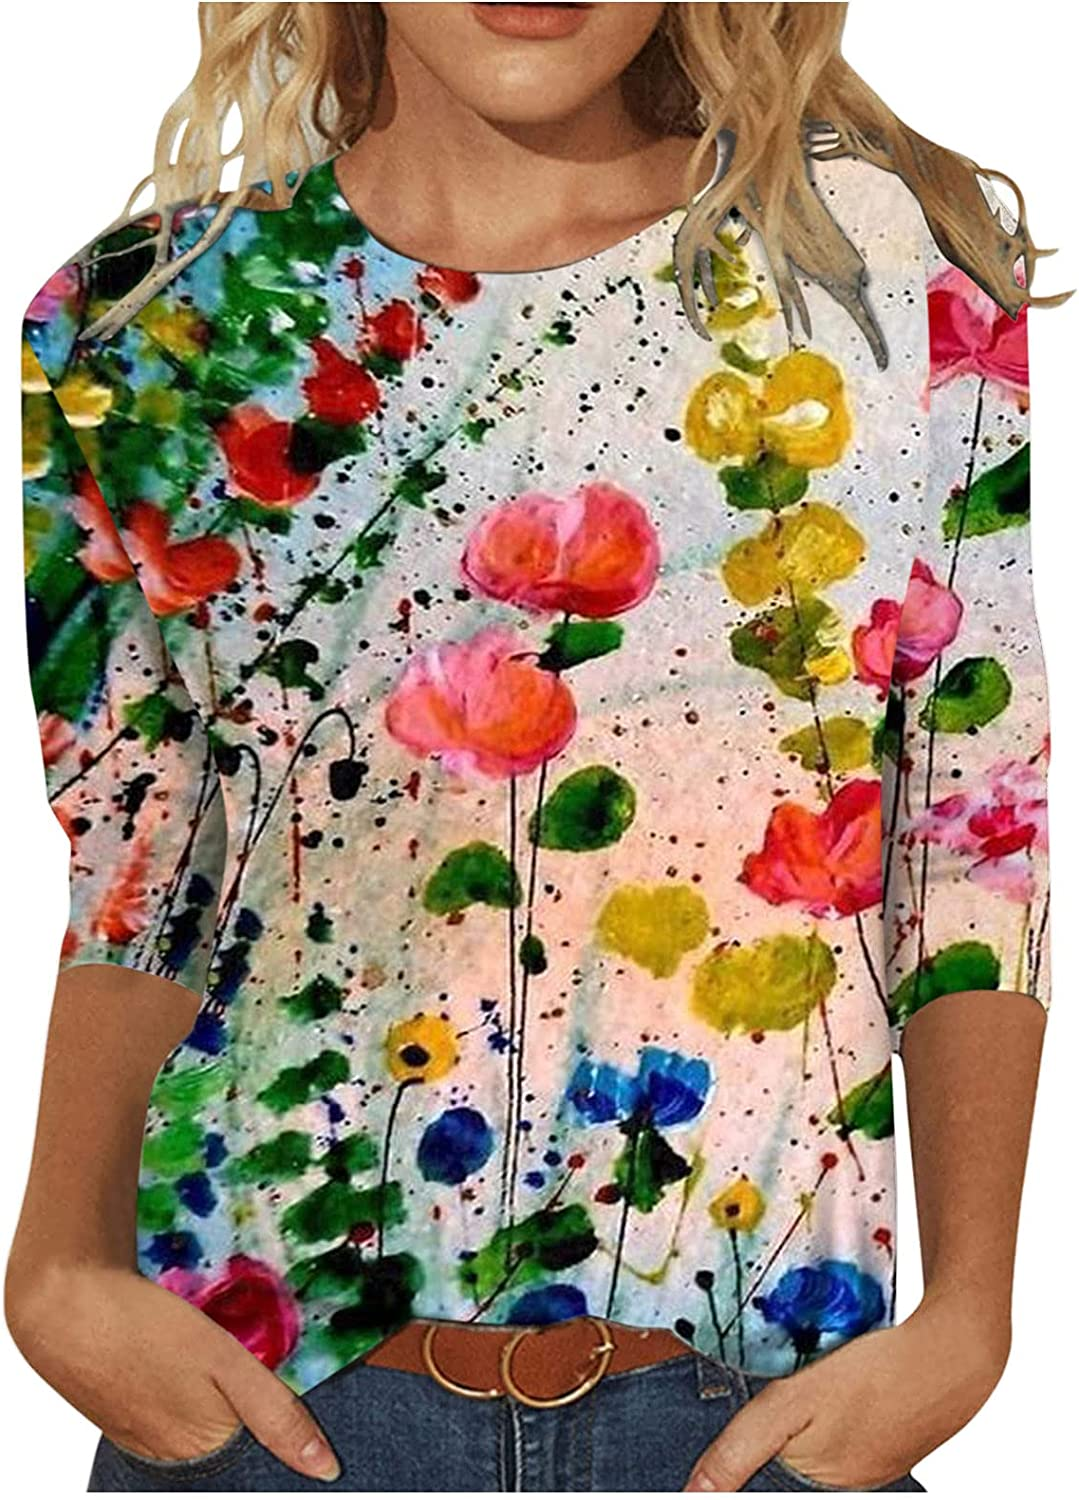 Womens Sales of SALE items from new works Long Sleeve Work Shirts 1 year warranty Women's Floral Fashion Sweatshirt